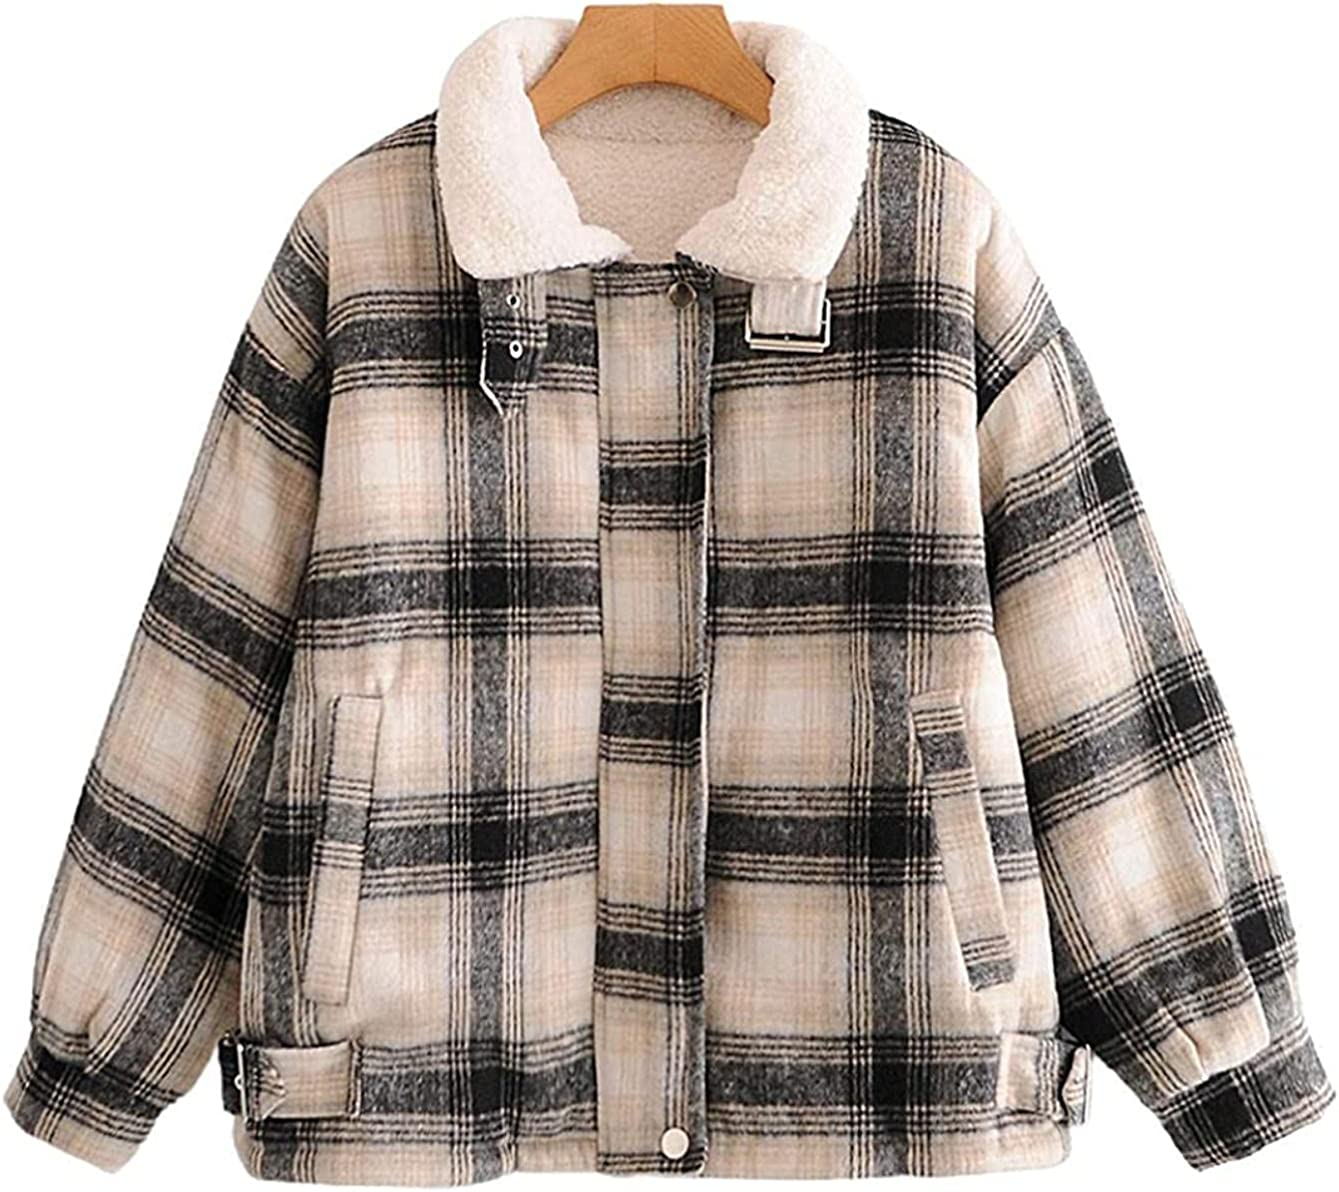 Tayaho Women's Baggy Lapel Collar Lambswool Plaid Quilted Short Warm Outwear Jacket